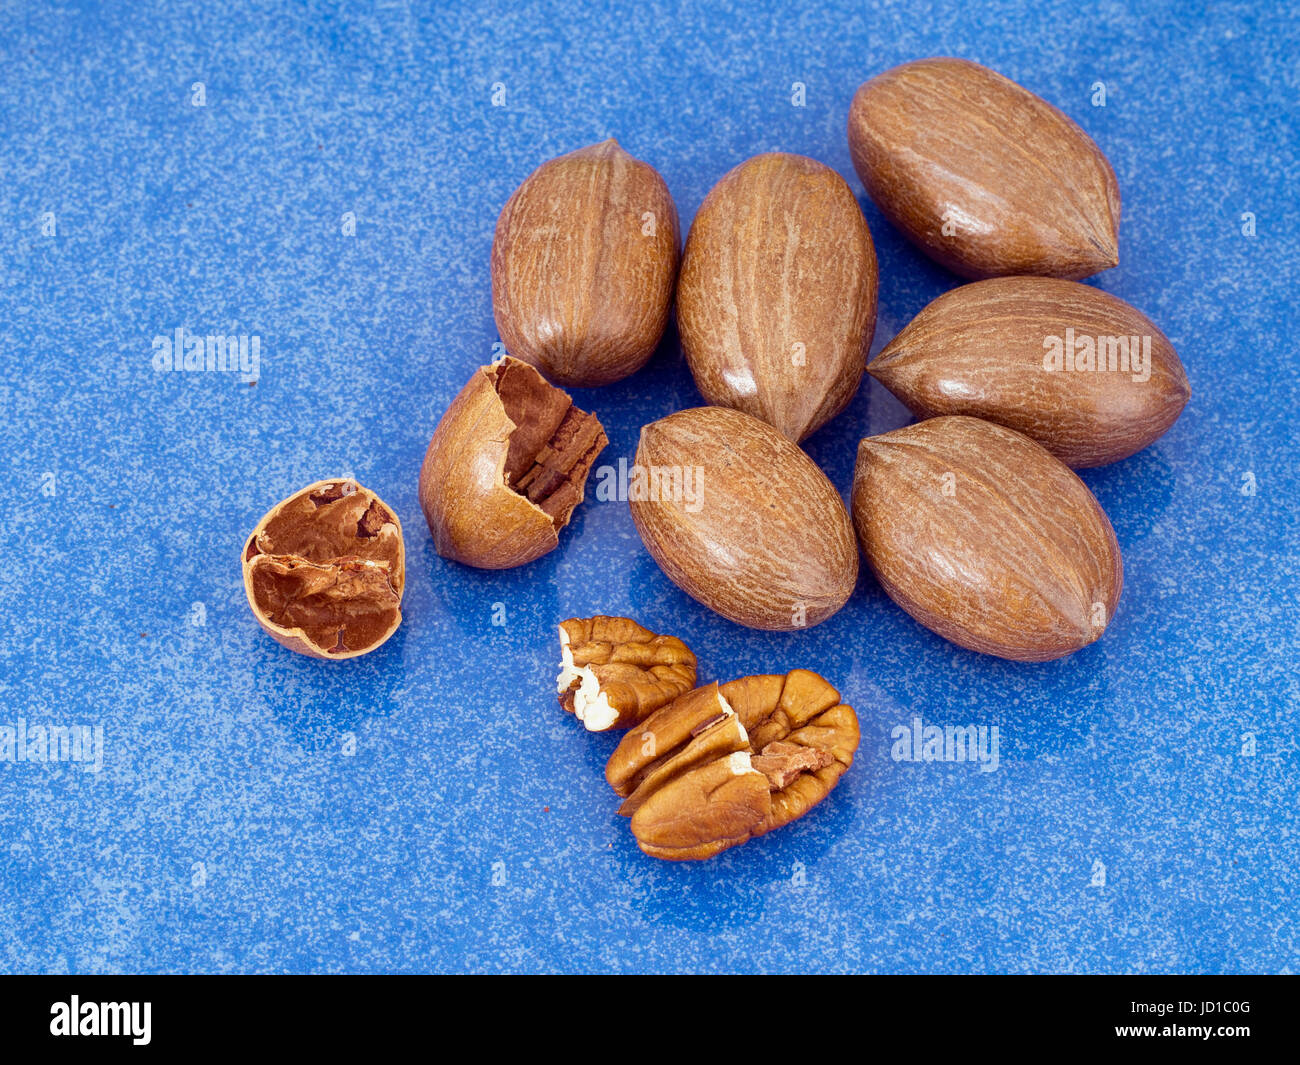 Pecan nuts on shiny blue background. Healthy snack, rich in vitamins, minerals. - Stock Image